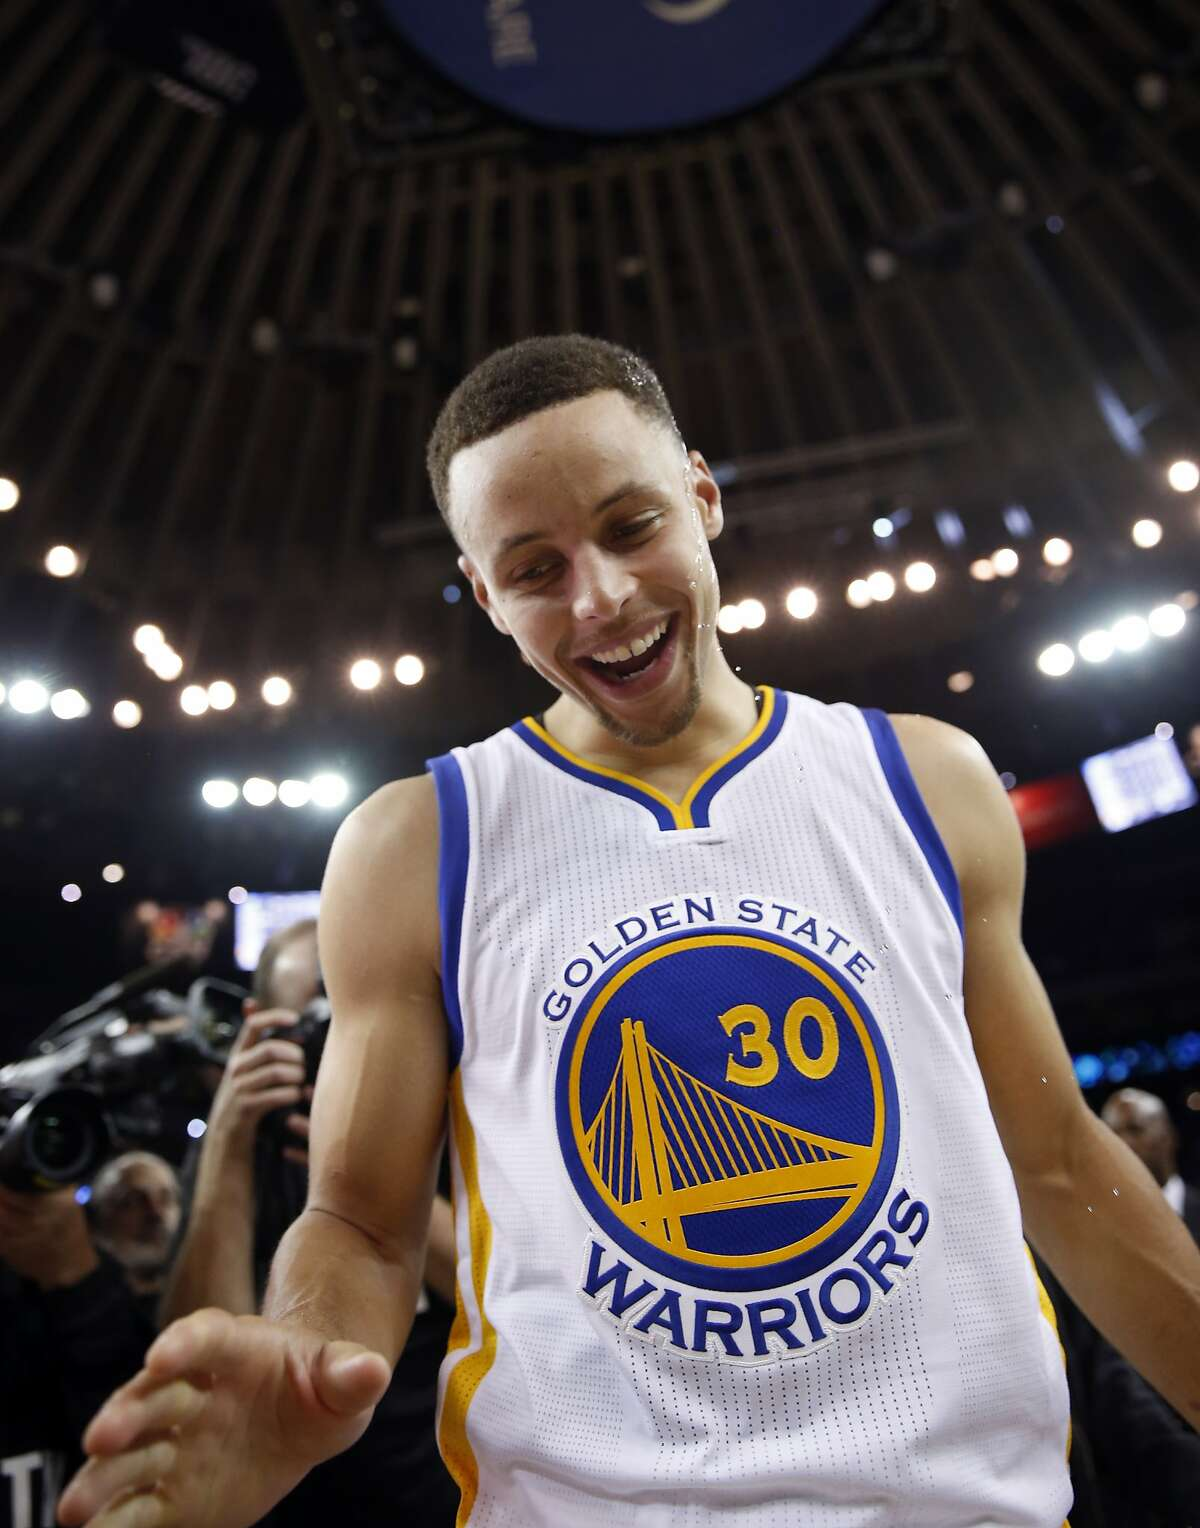 Golden State Warriors' Stephen Curry reacts to being doused by water after 73rd win, a victory over Memphis Grizzlies during NBA game at Oracle Arena in Oakland, Calif., on Wednesday, April 13, 2016.